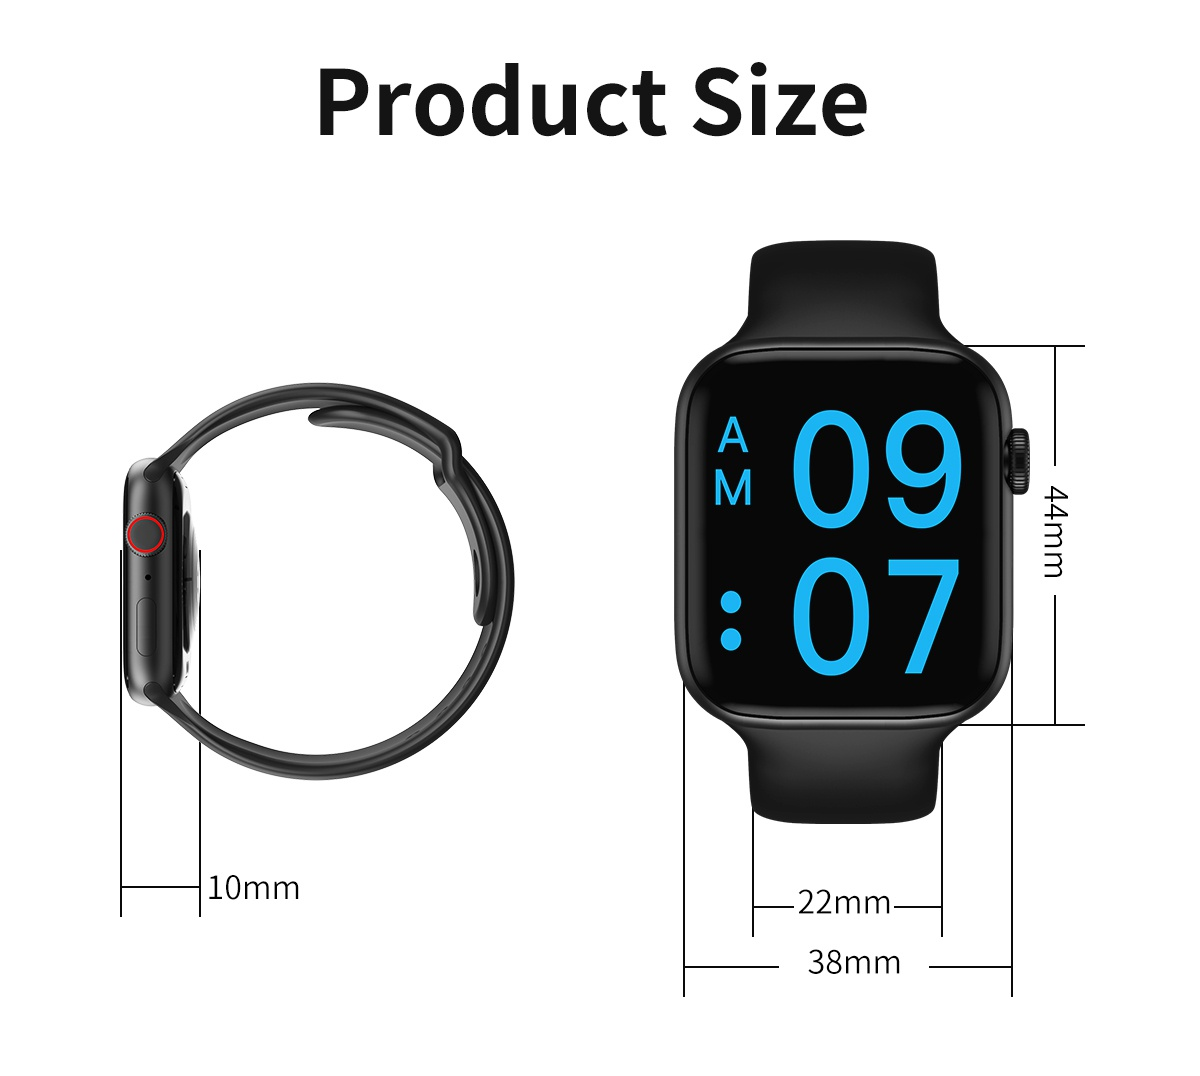 NEW Arrive As Apple's 5th Generation Smart Watch Work Support Heart Rate Detection Blood Pressure Test Sleep Monitoring Bluetooth Call Waterproof Sports Smarrwatch Exquisite Tracker Smart Bracelet Wristband